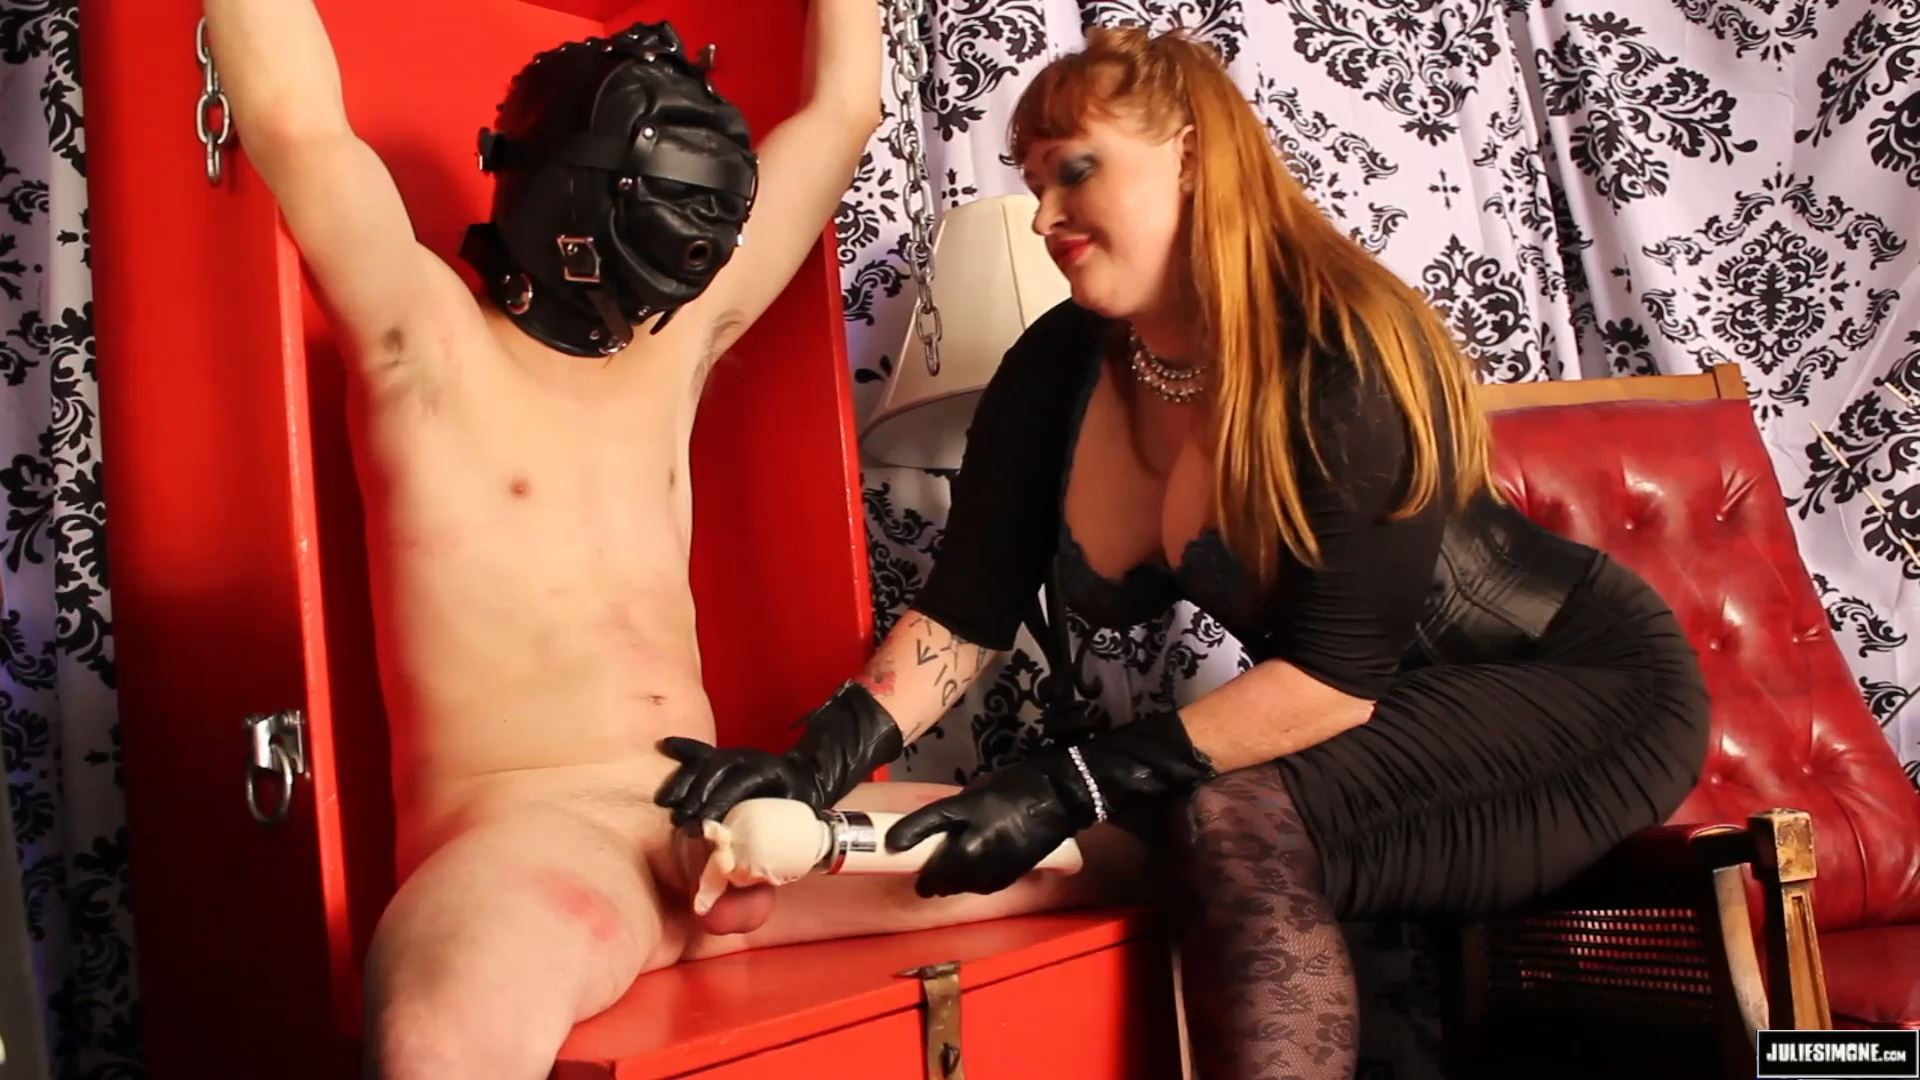 Julie Simone, Fluffykins In Scene: Chastity Tease & Denial - JULIESIMONE - FULL HD/1080p/MP4